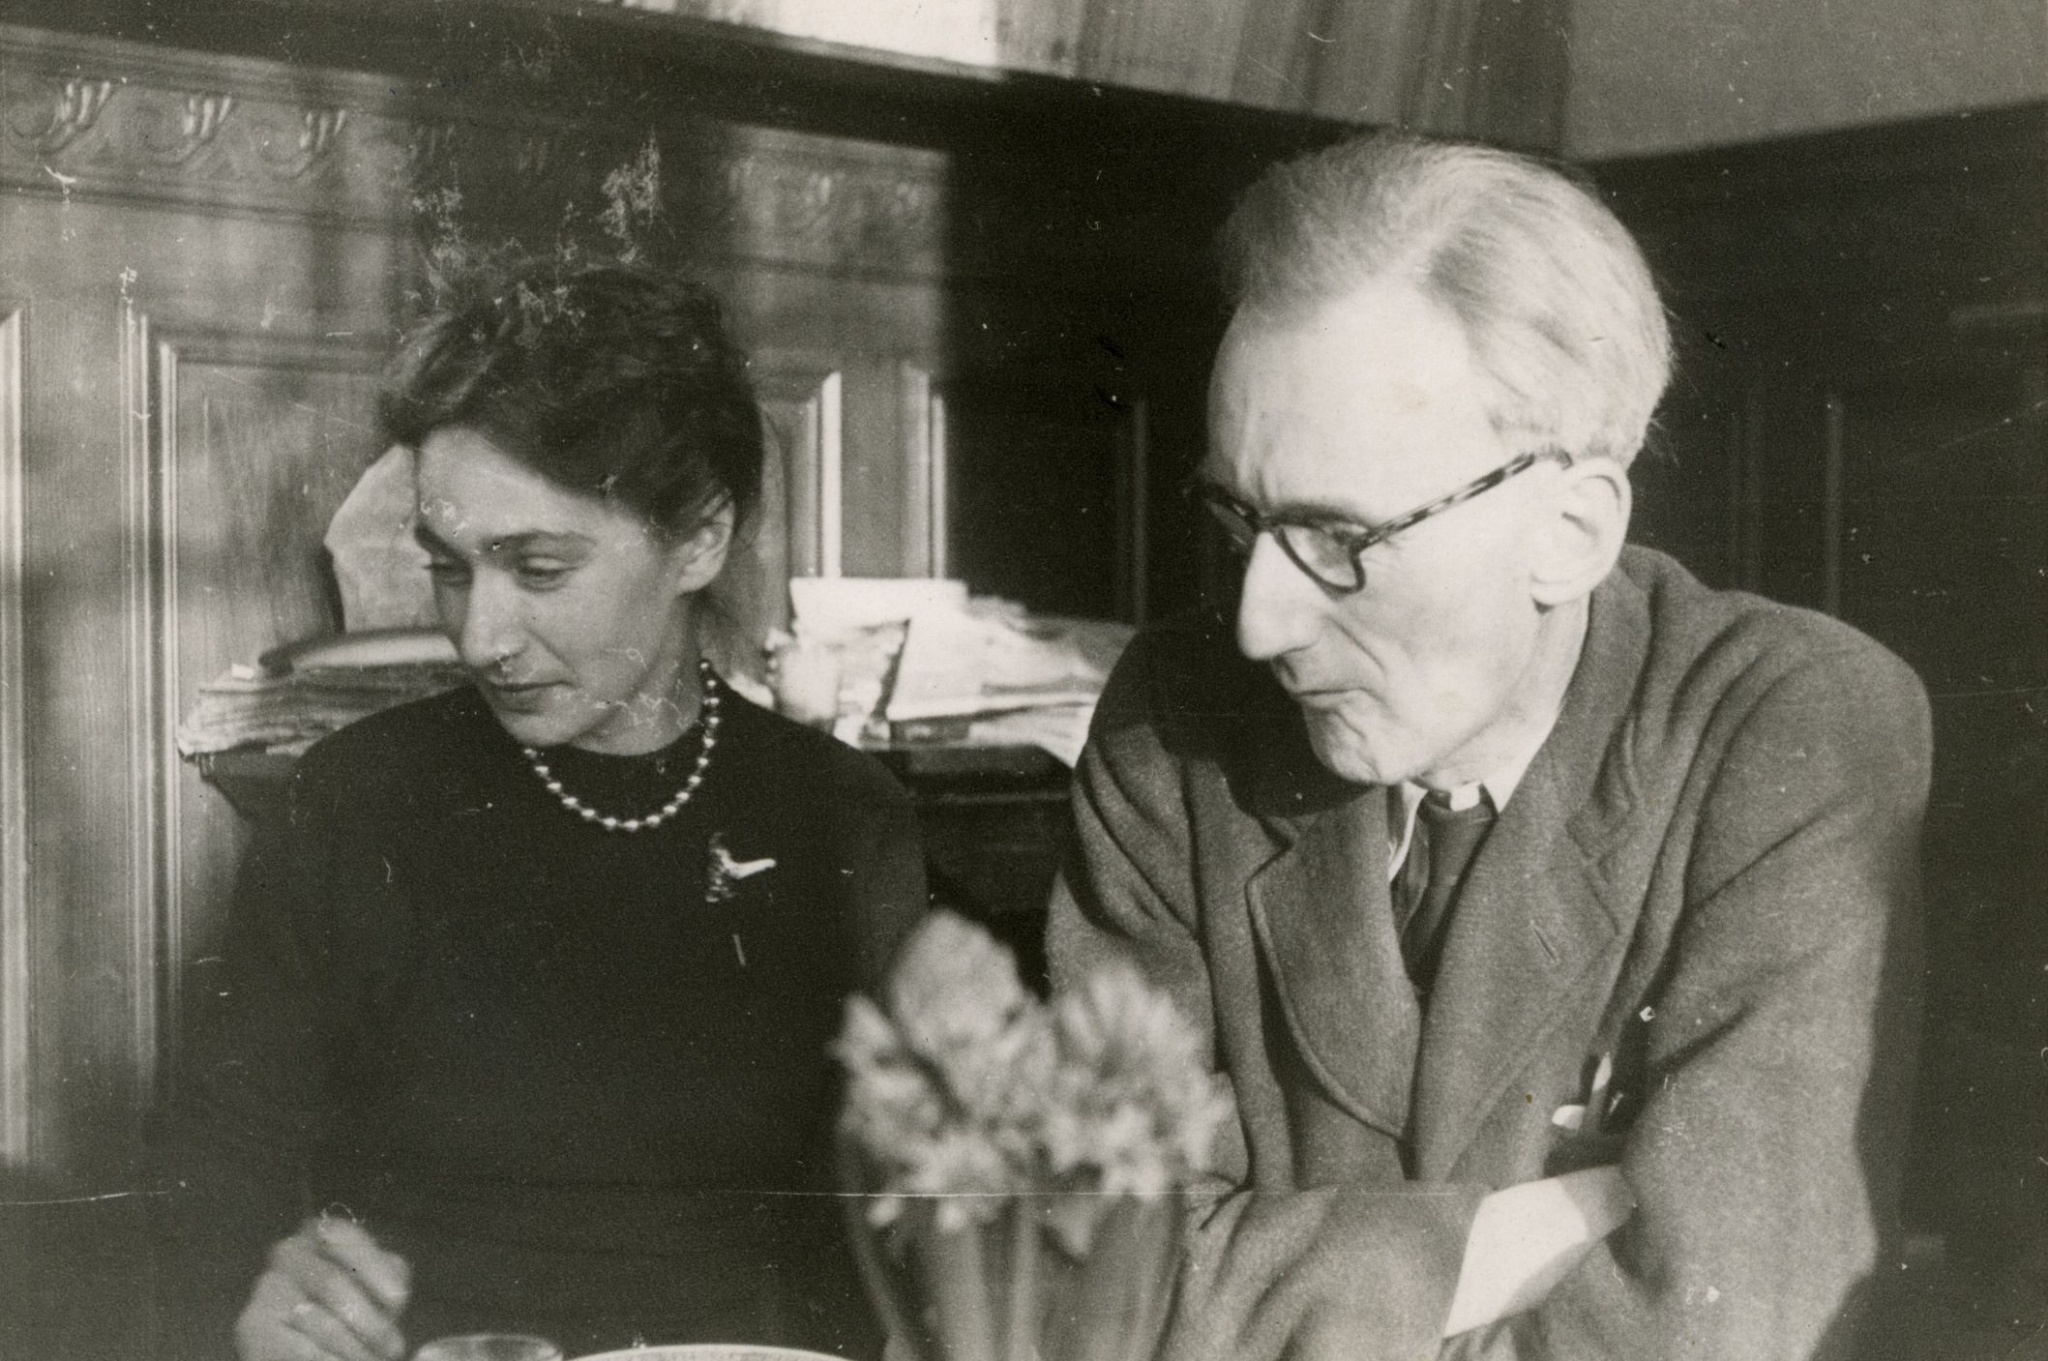 Jozef Czapski with his long-standing colleague, Zofia Hertz in Maisons-Laffitte, 1948